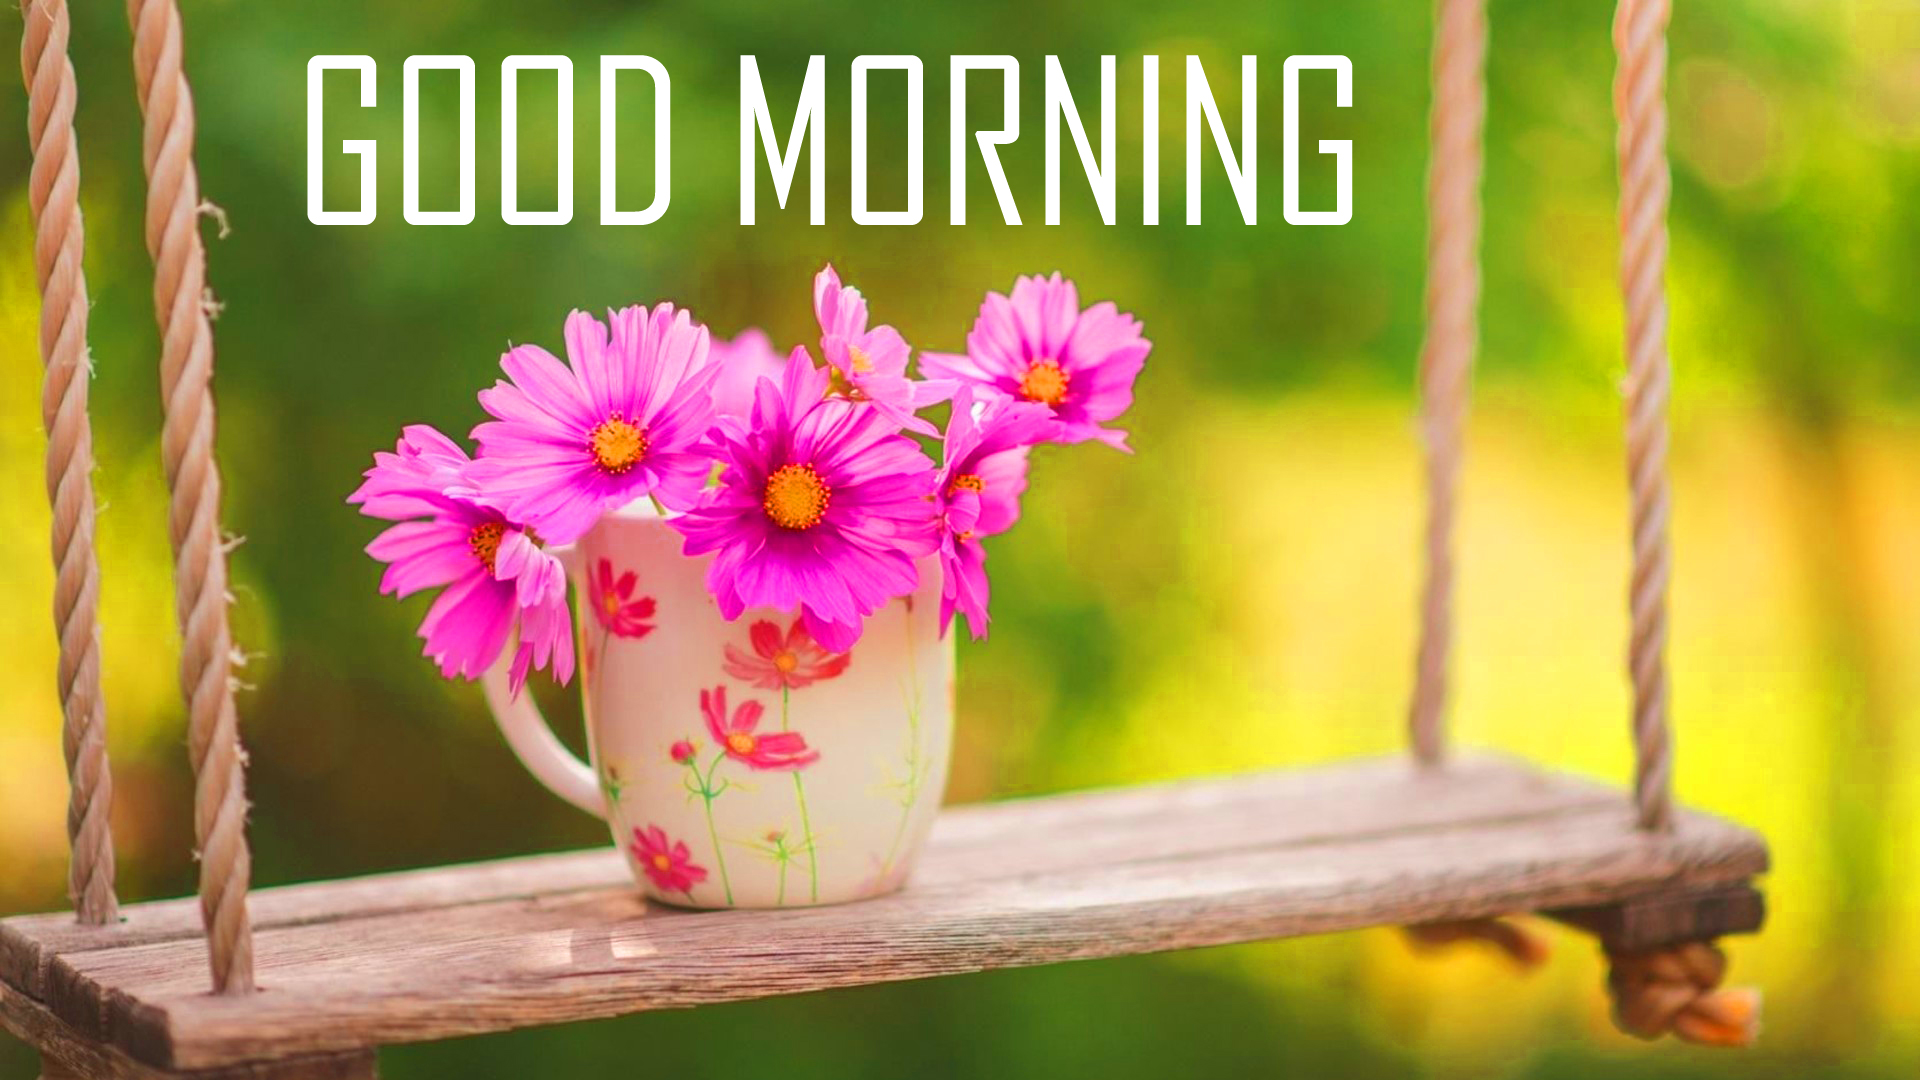 246 Good Morning Images Photo Pictures With Flowers Hd Download Good Morning Images Good Morning Photo Hd Downlaod Good Morning Pics Wallpaper Hd